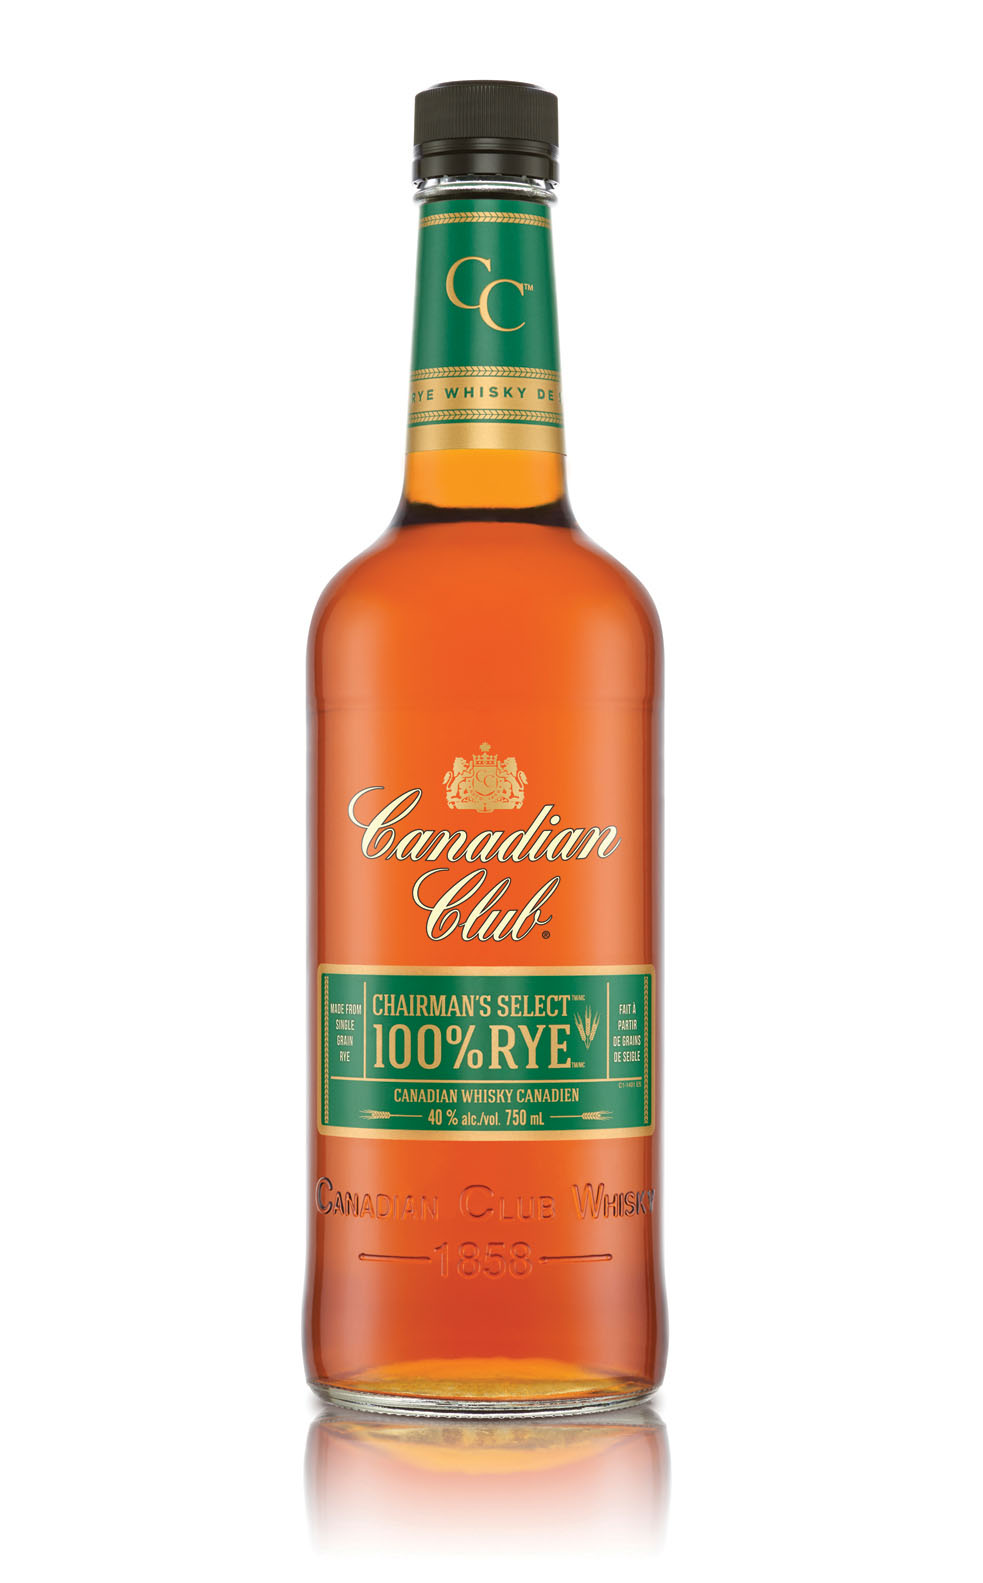 Canadian Club launches Canadian Club Chairman's Select 100% Rye. (CNW Group/Beam Suntory Inc.)